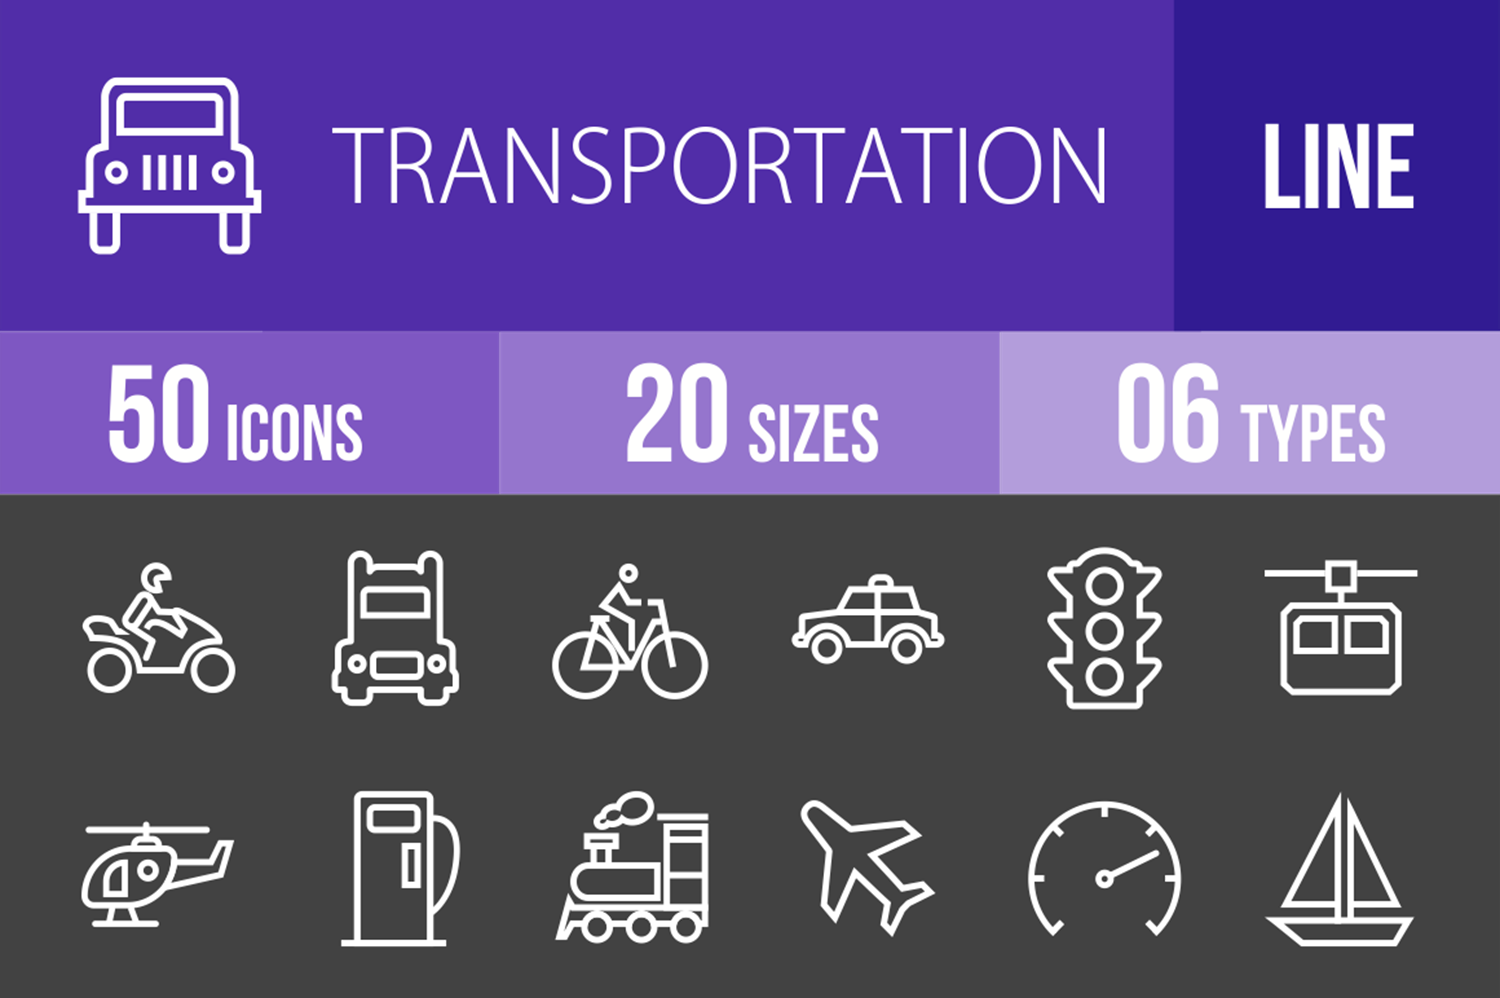 50 Transportation Line Inverted Icons example image 1